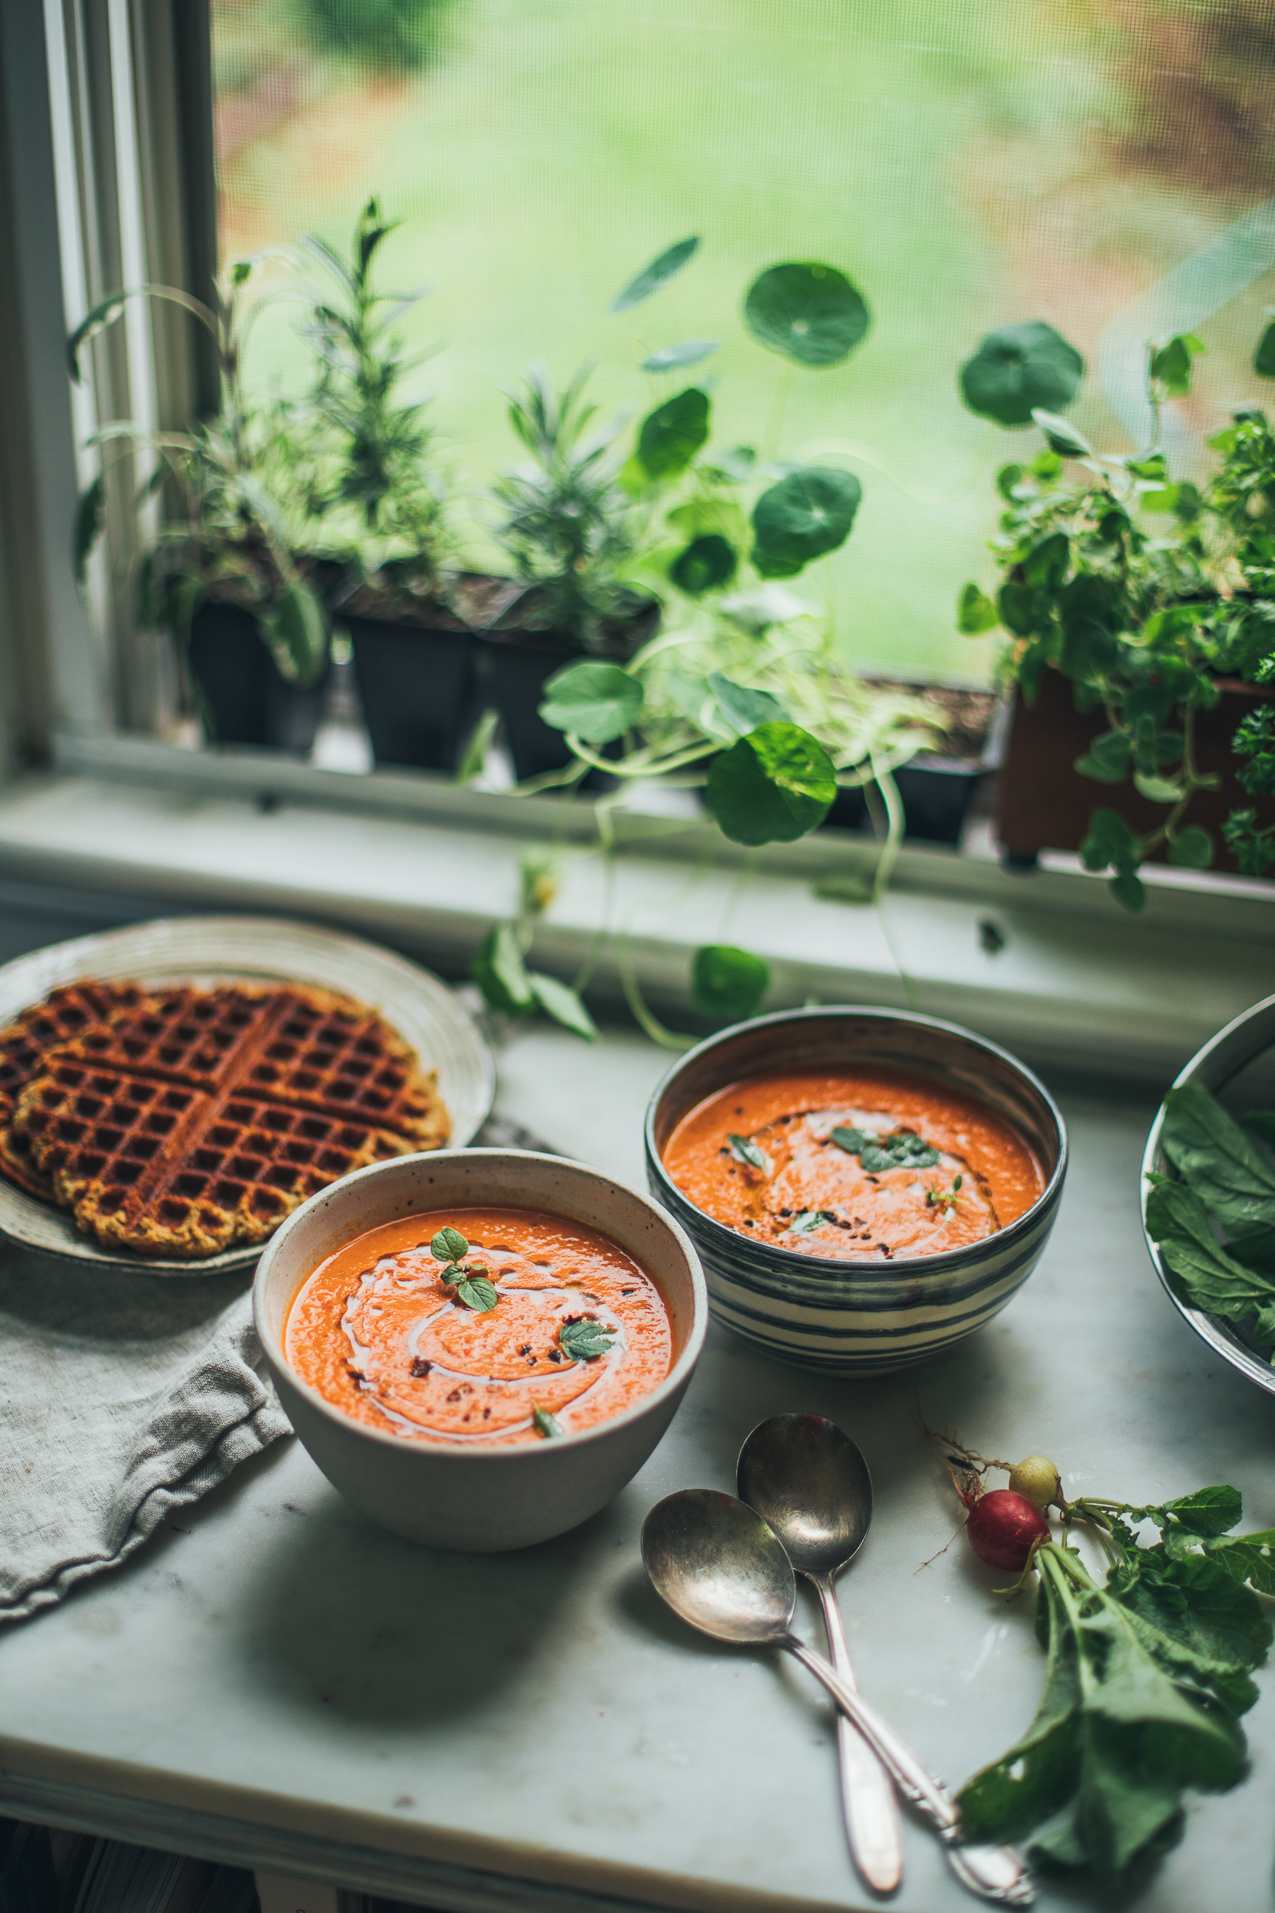 The Best Creamy Vegan Tomato Soup With Fennel My Go To Savory Picco Latte Matcha Green Tea Can Almond Waffles